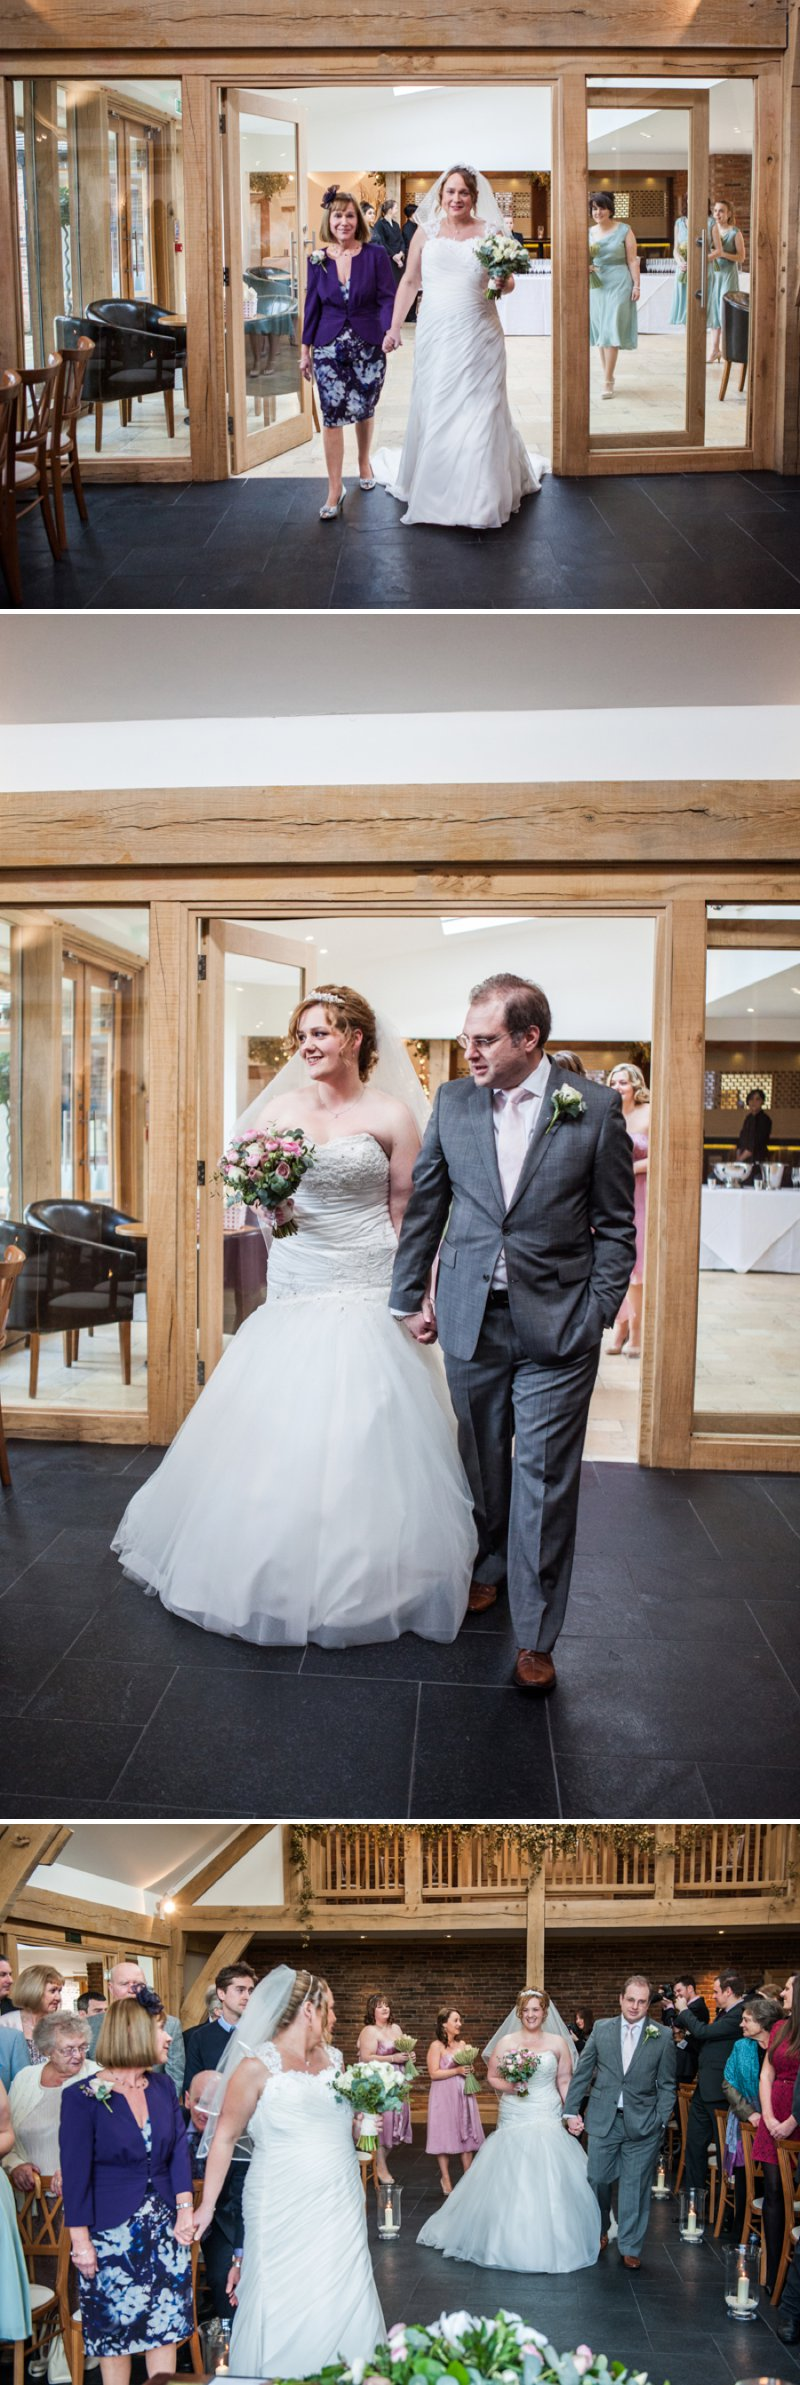 Rustic Same Sex Wedding At Mythe Barn With Brides In Traditional Ivory Gowns By Mori Lee And Donna Lee Designs With Bridesmaids In Dusky Pink And Sage Green 3